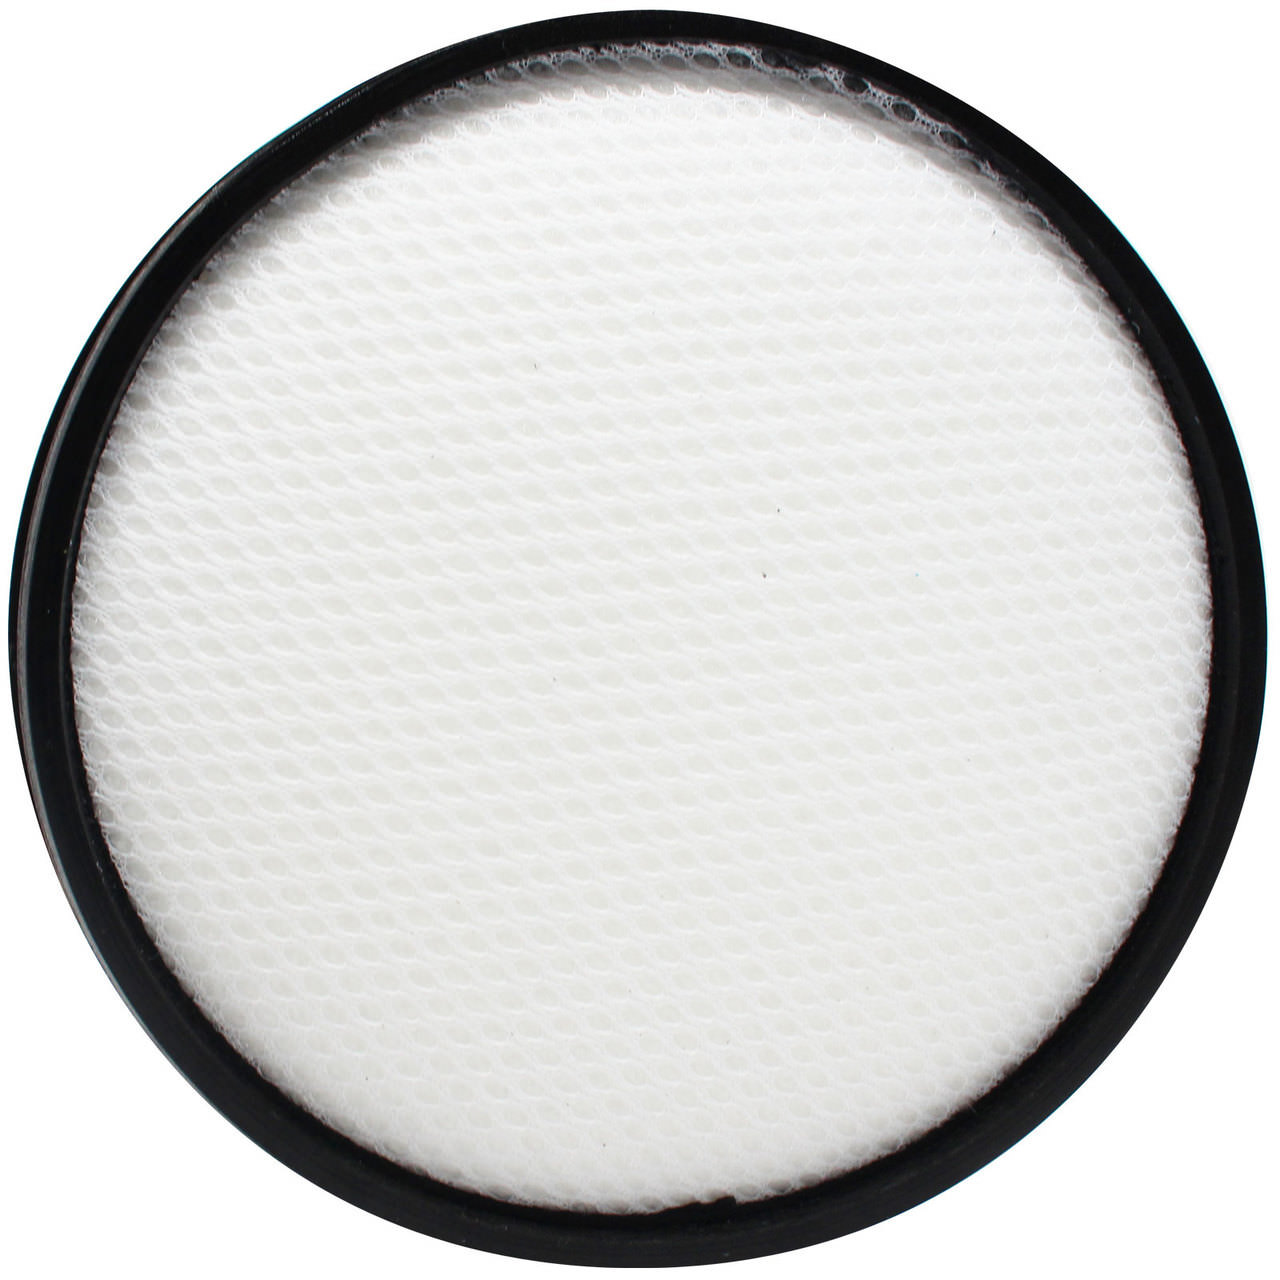 Replacement Hoover WindTunnel 3 Pro Pet Bagless Upright UH70935 Vacuum Primary Filter - Compatible Hoover Windtunnel 303903001 Primary Filter